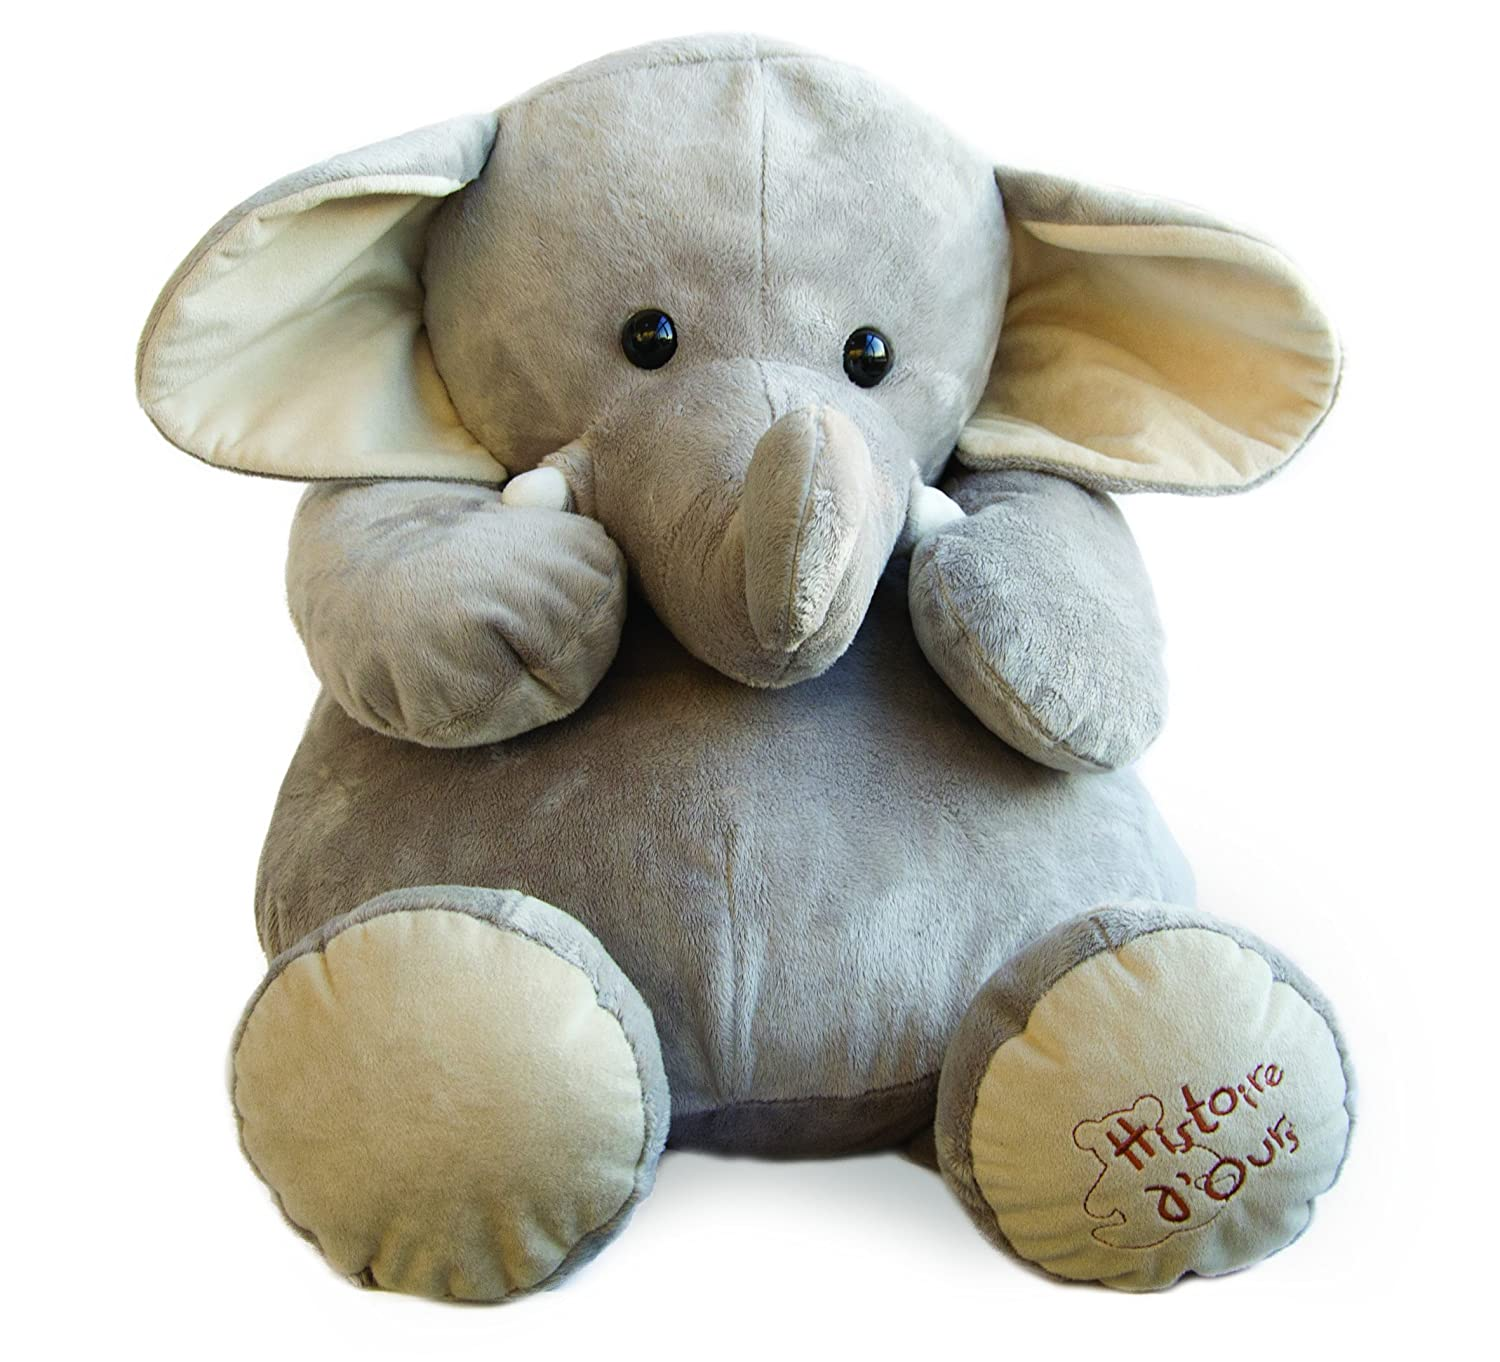 Amazon.com: Giant elephant - 60 cm [Baby Product]: Health & Personal Care